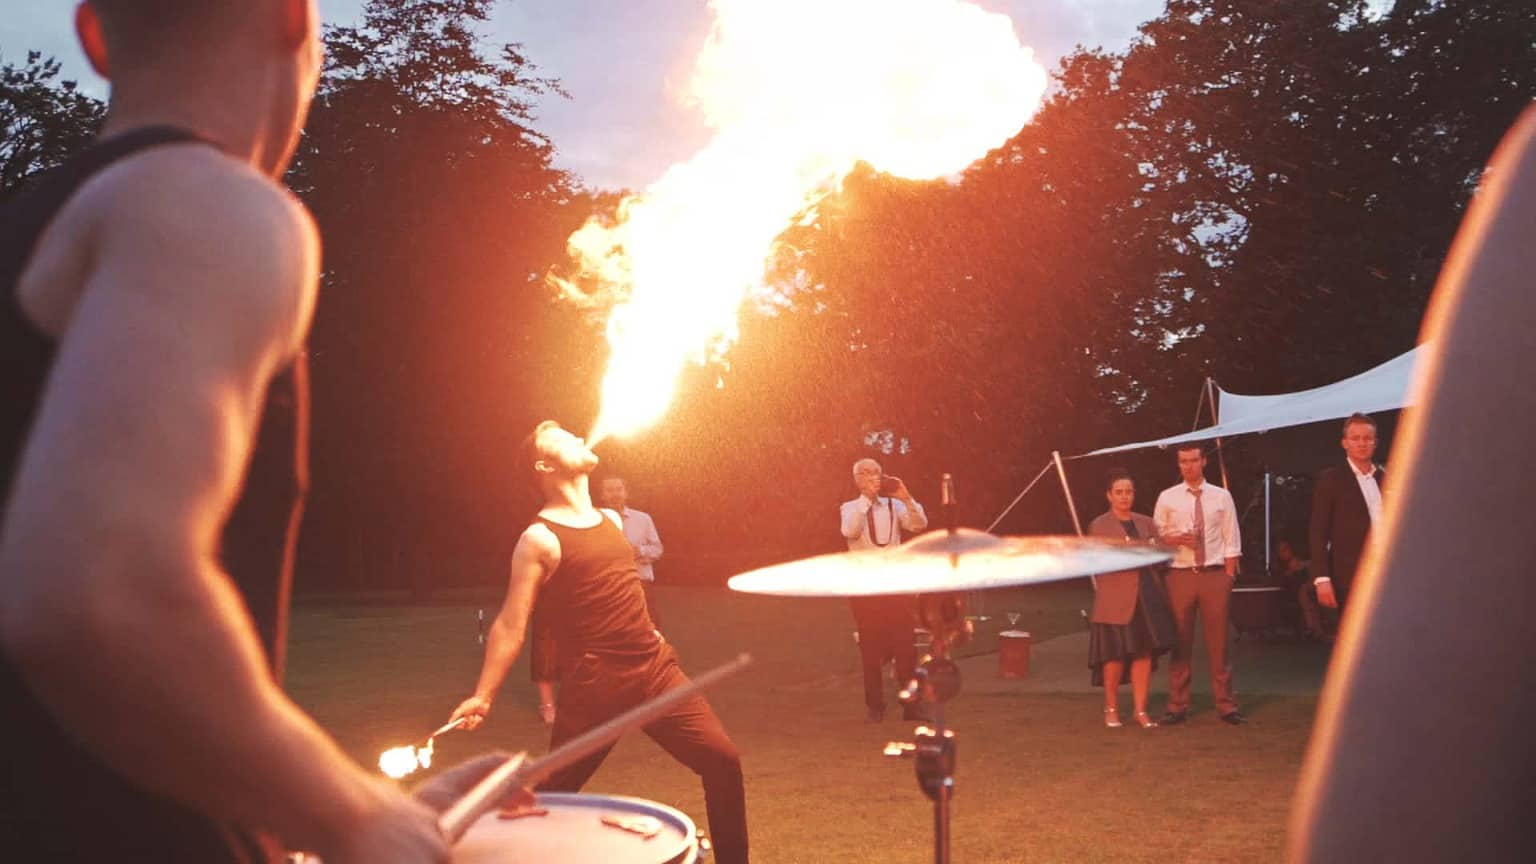 close details on fire show performance